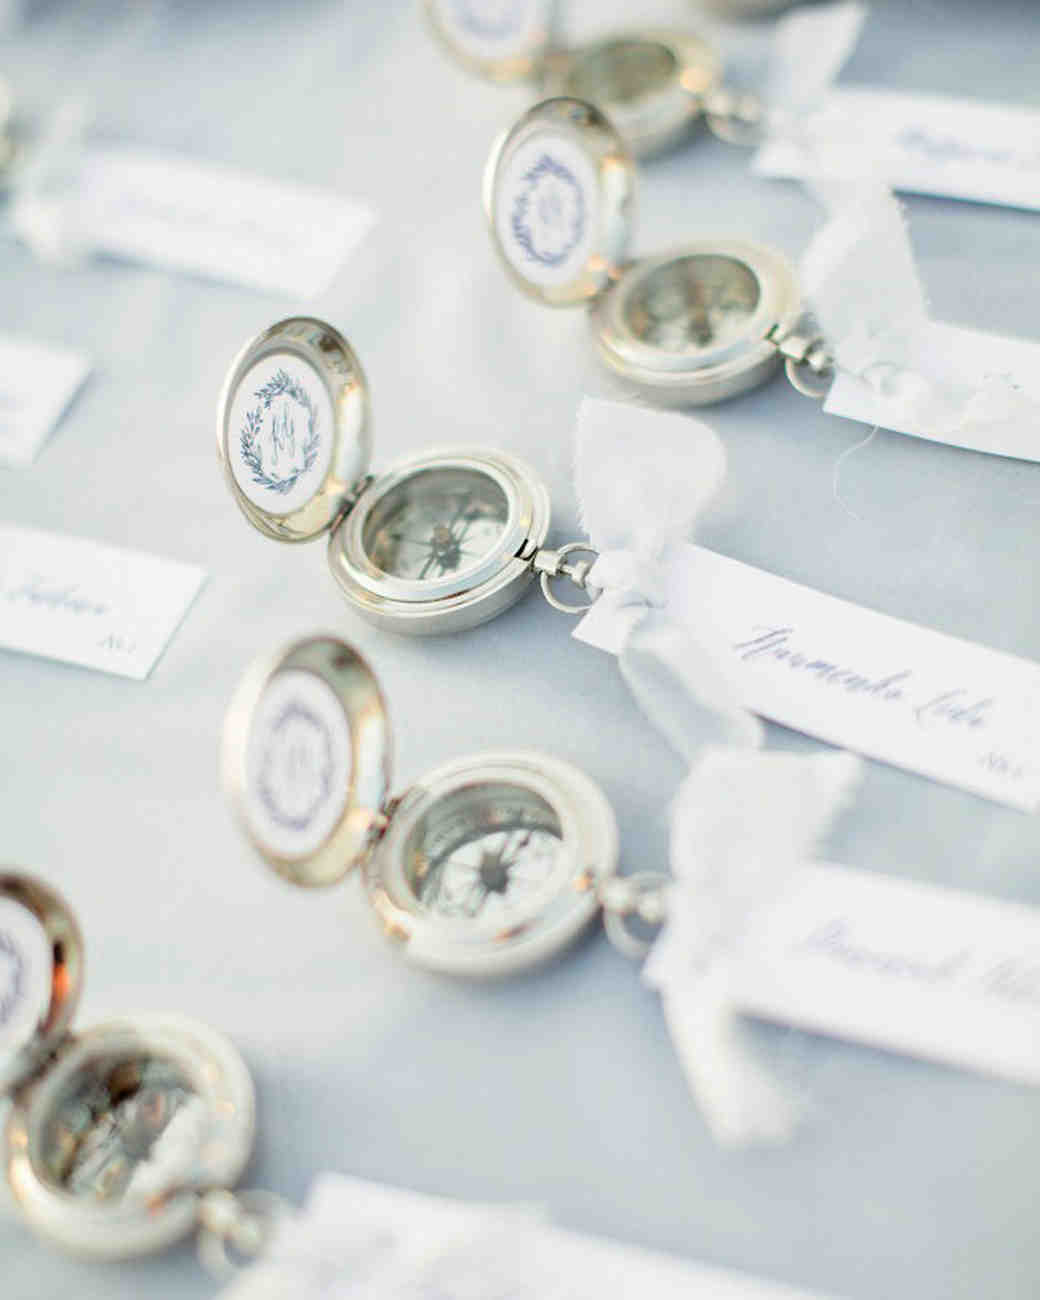 5ffa1a36a578a0 29 Destination Wedding Favors Inspired by Travel